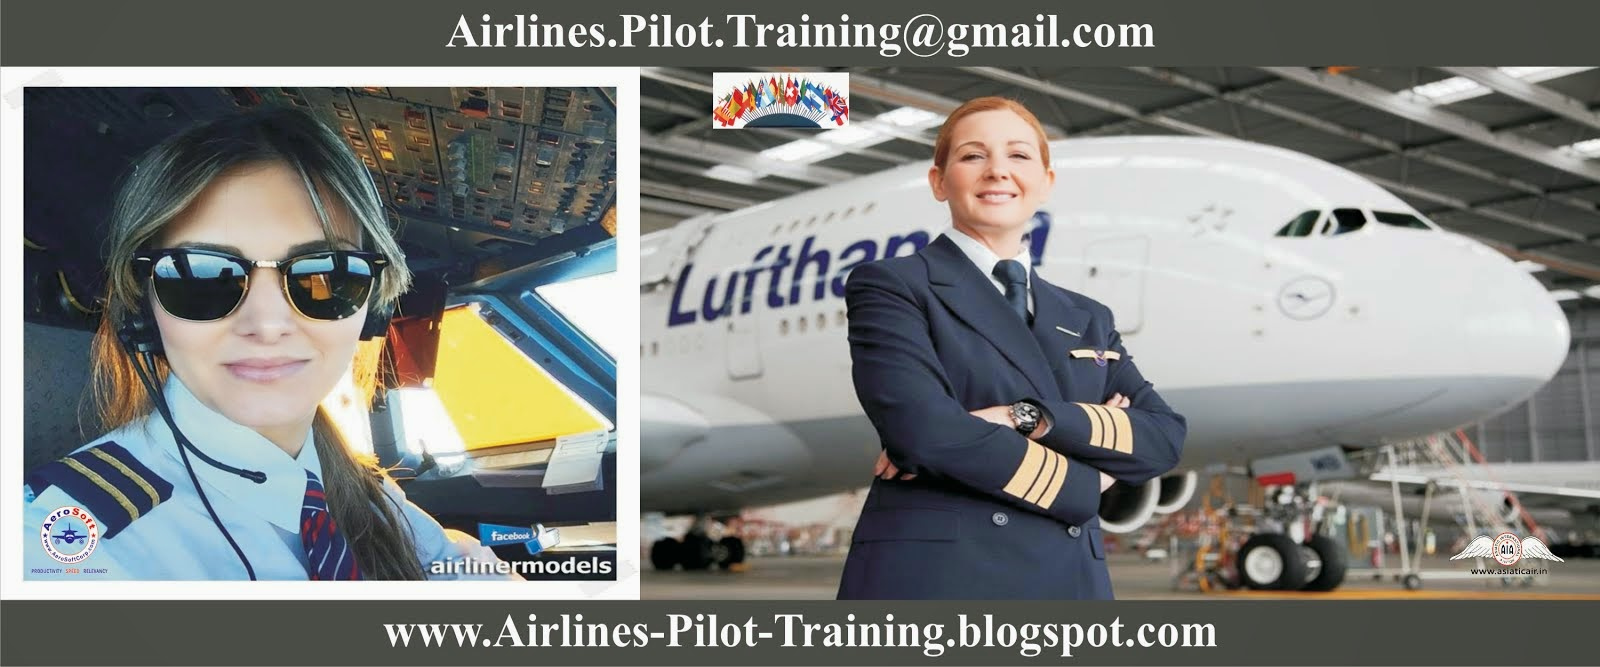 www.Airlines-Pilot-Training.blogspot.com